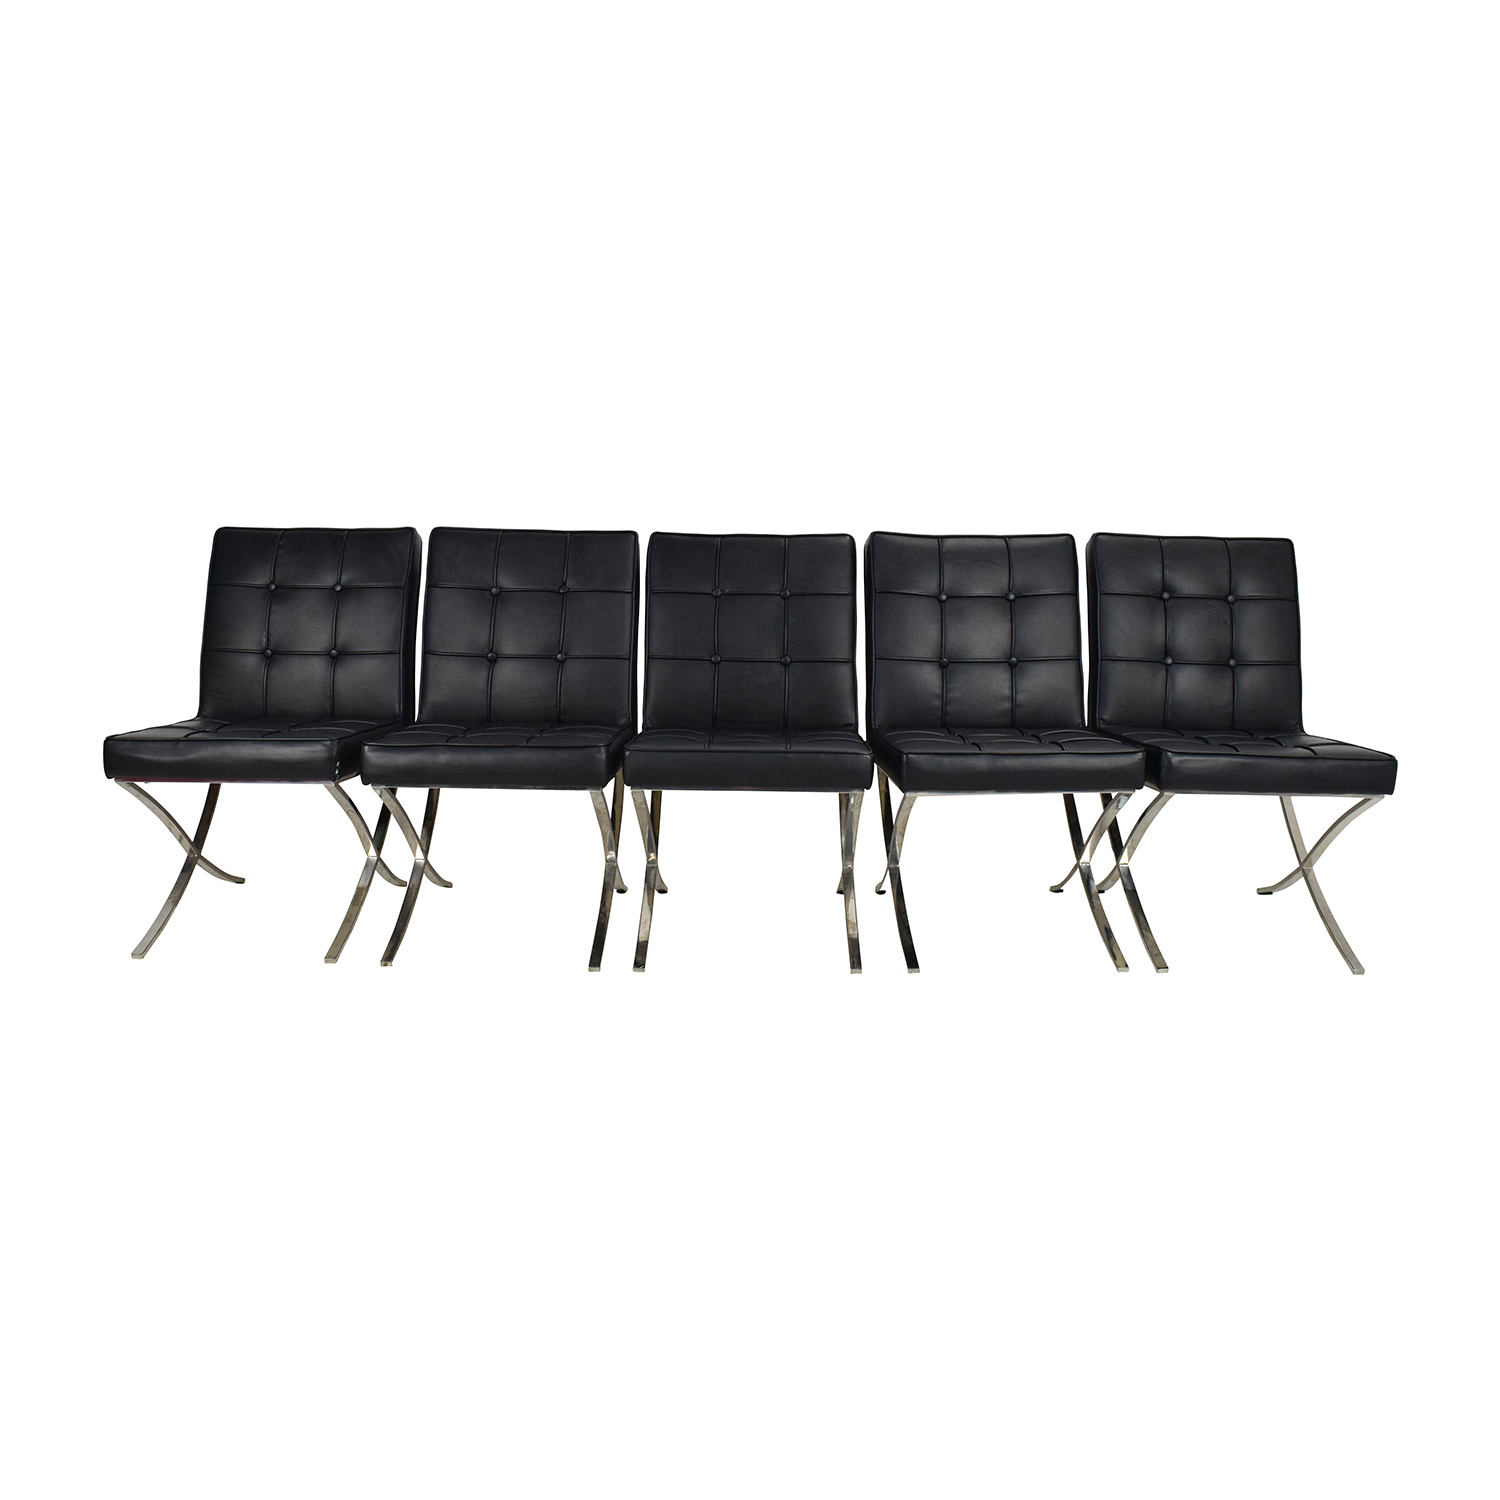 Black Leather Conference Room Chair Set for sale